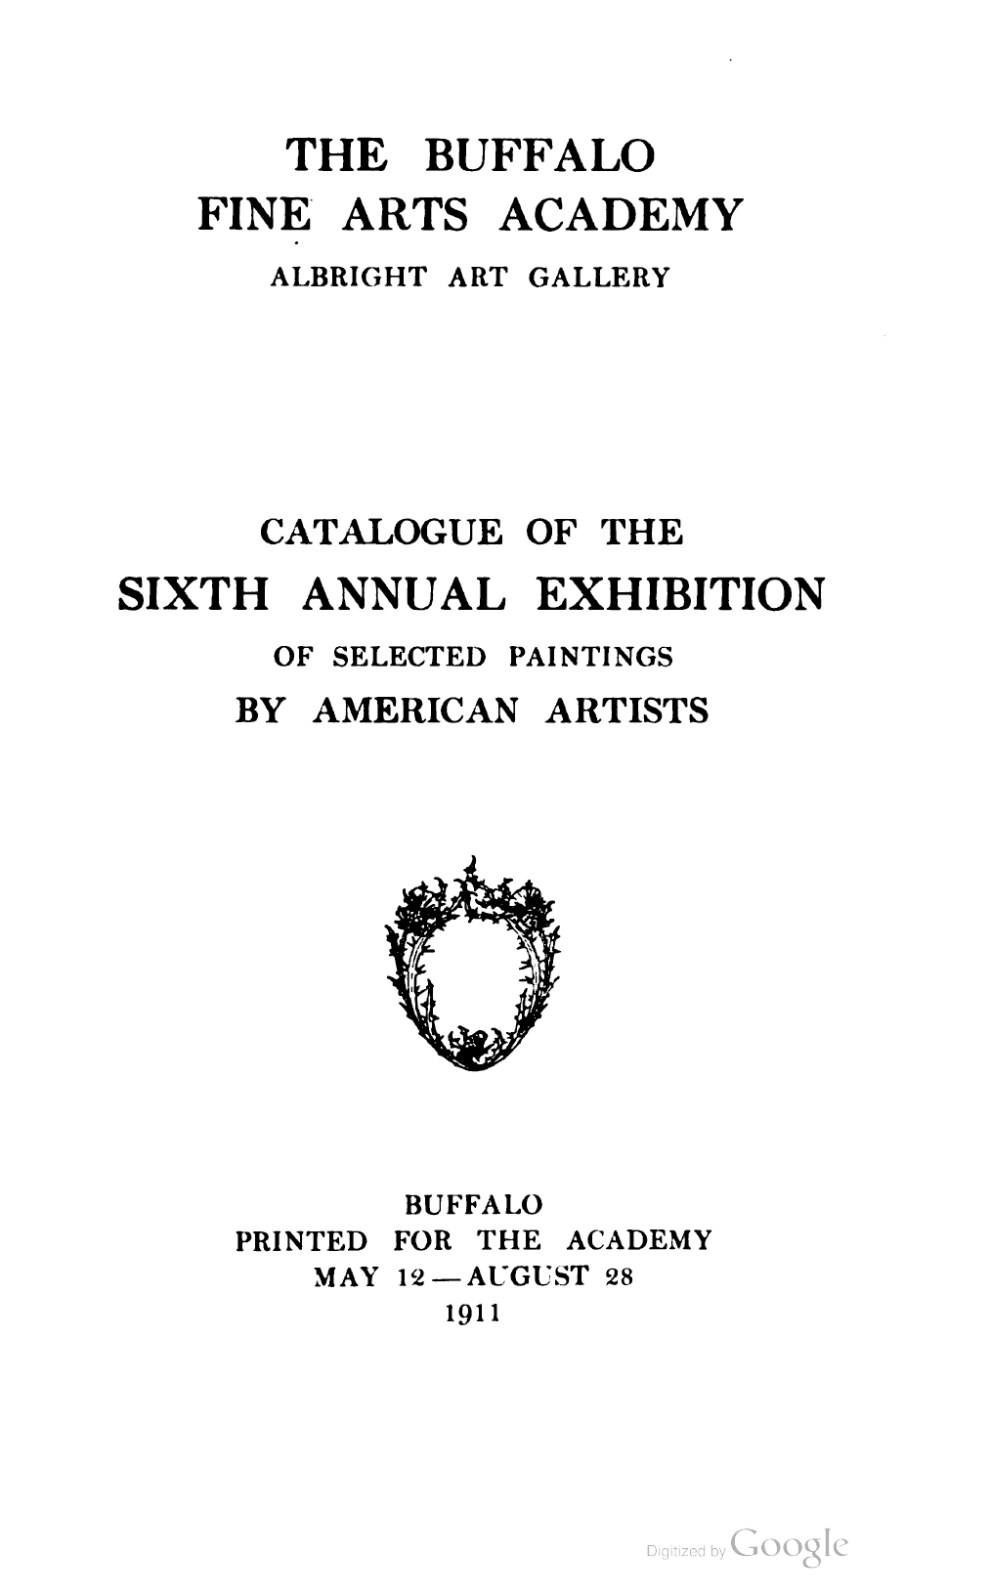 "1911 Buffalo Fine Arts Academy, Albright Art Gallery, Buffalo, NY, ""Sixth Annual Exhibition of Selected Paintings by American Artists"", May 12 – August 28"